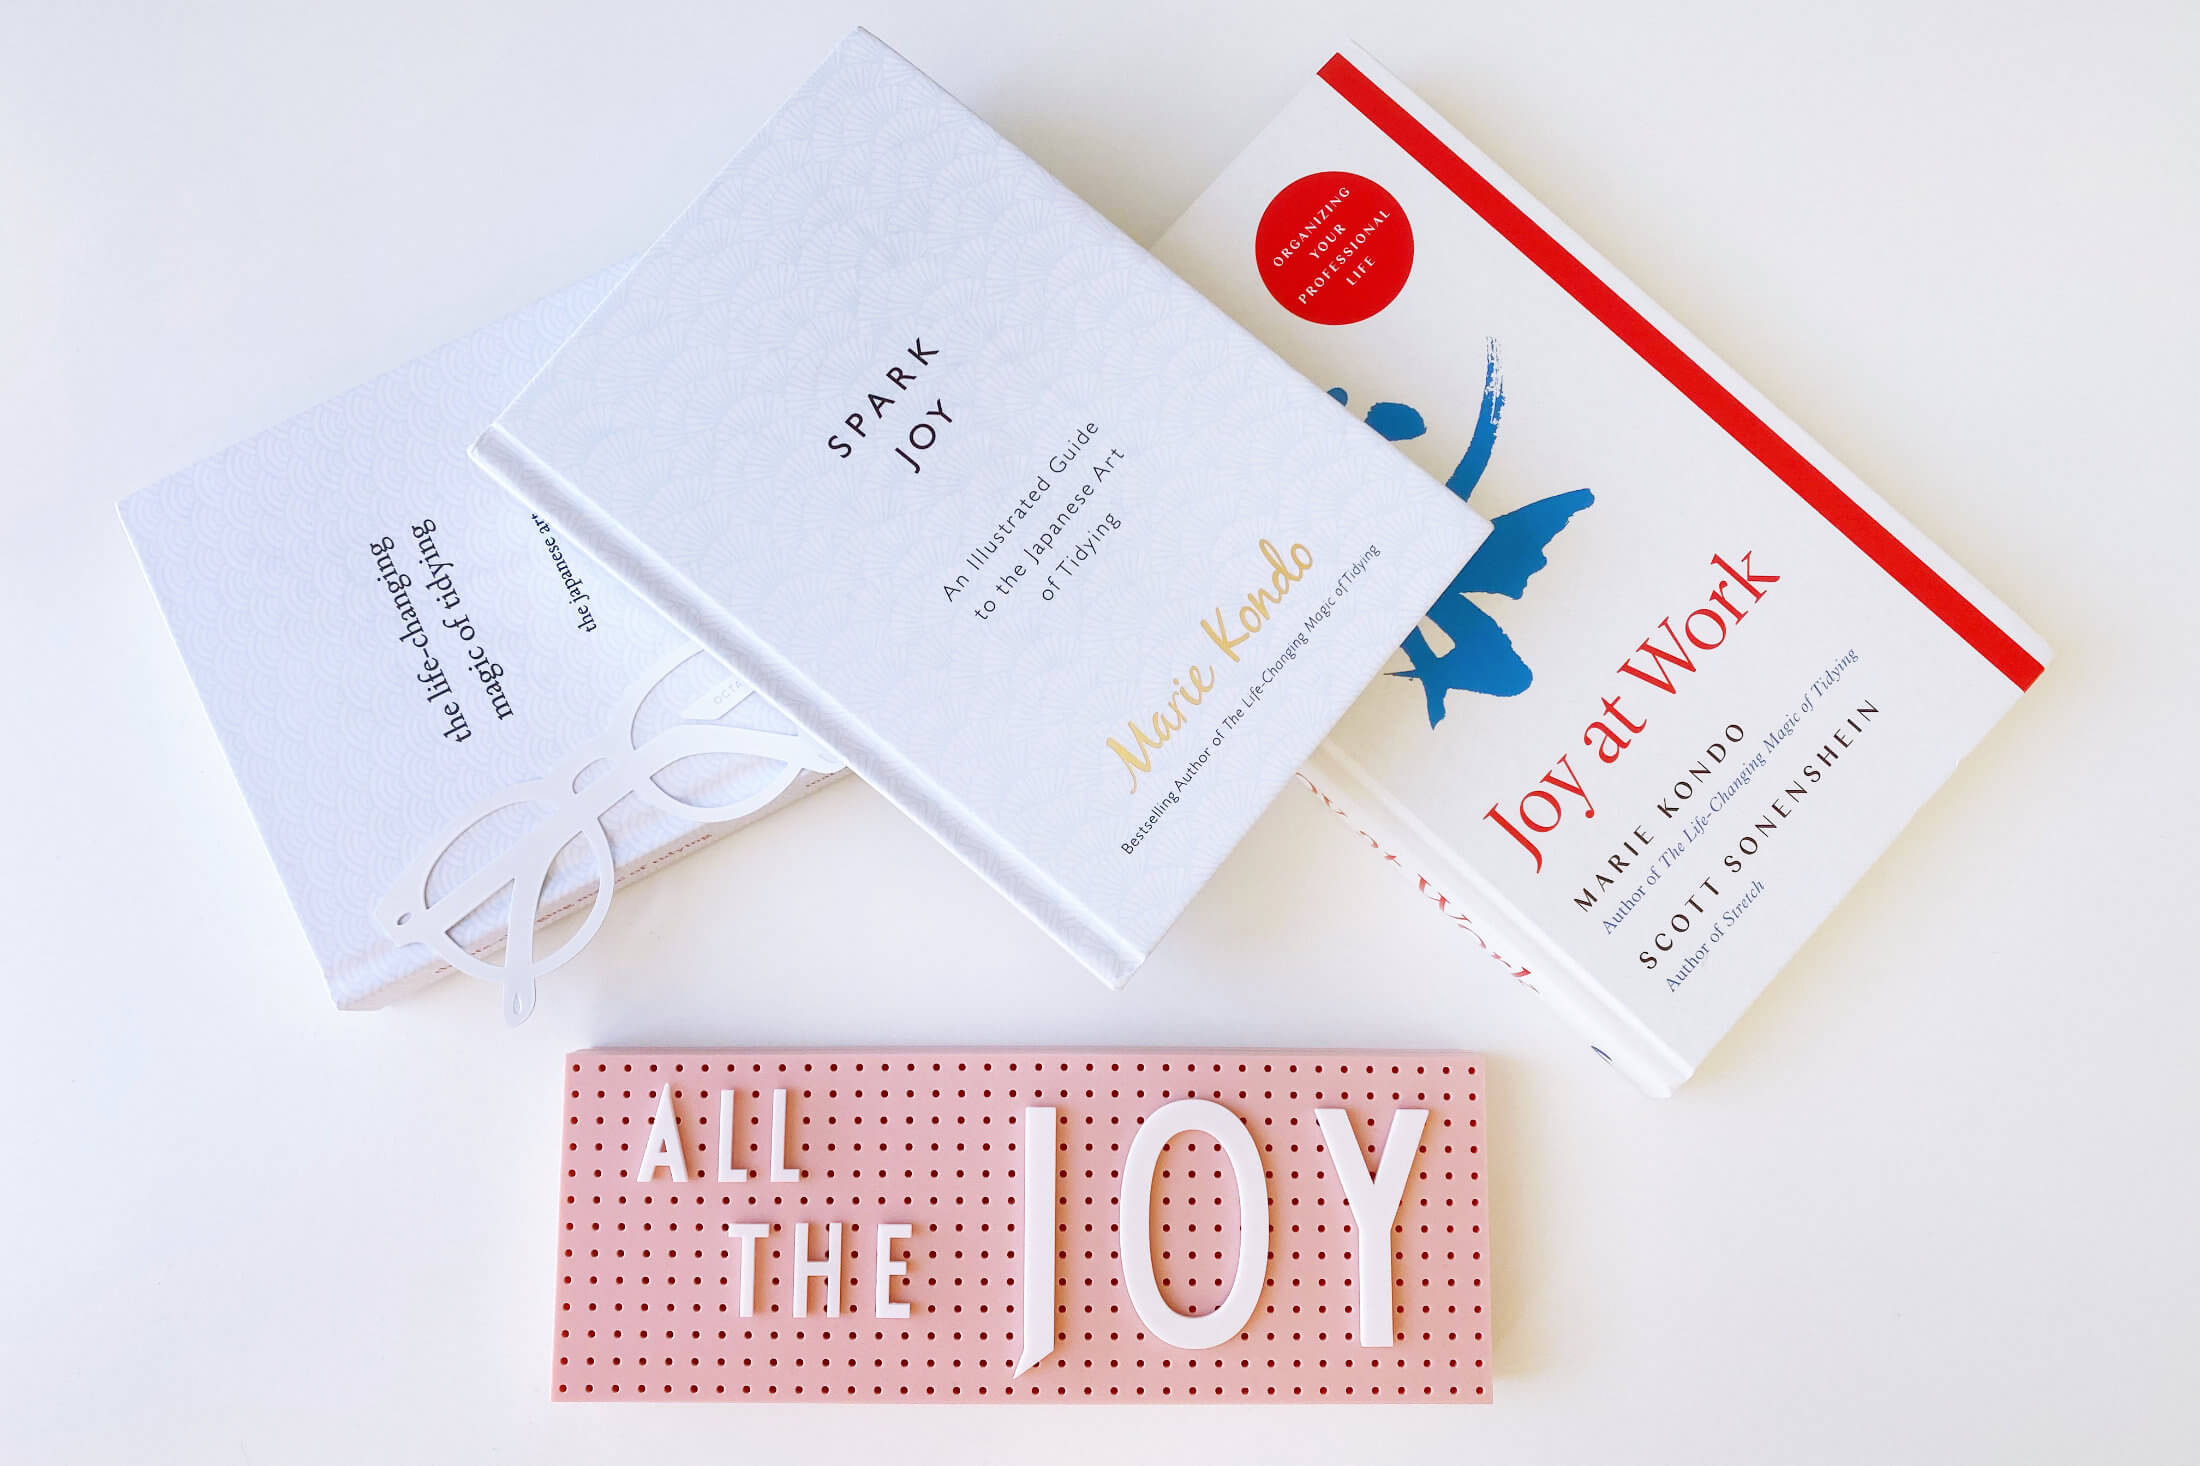 Marie Kondo's Bestselling Books About The KonMari Method And How To Transform Your Life Through Tidying